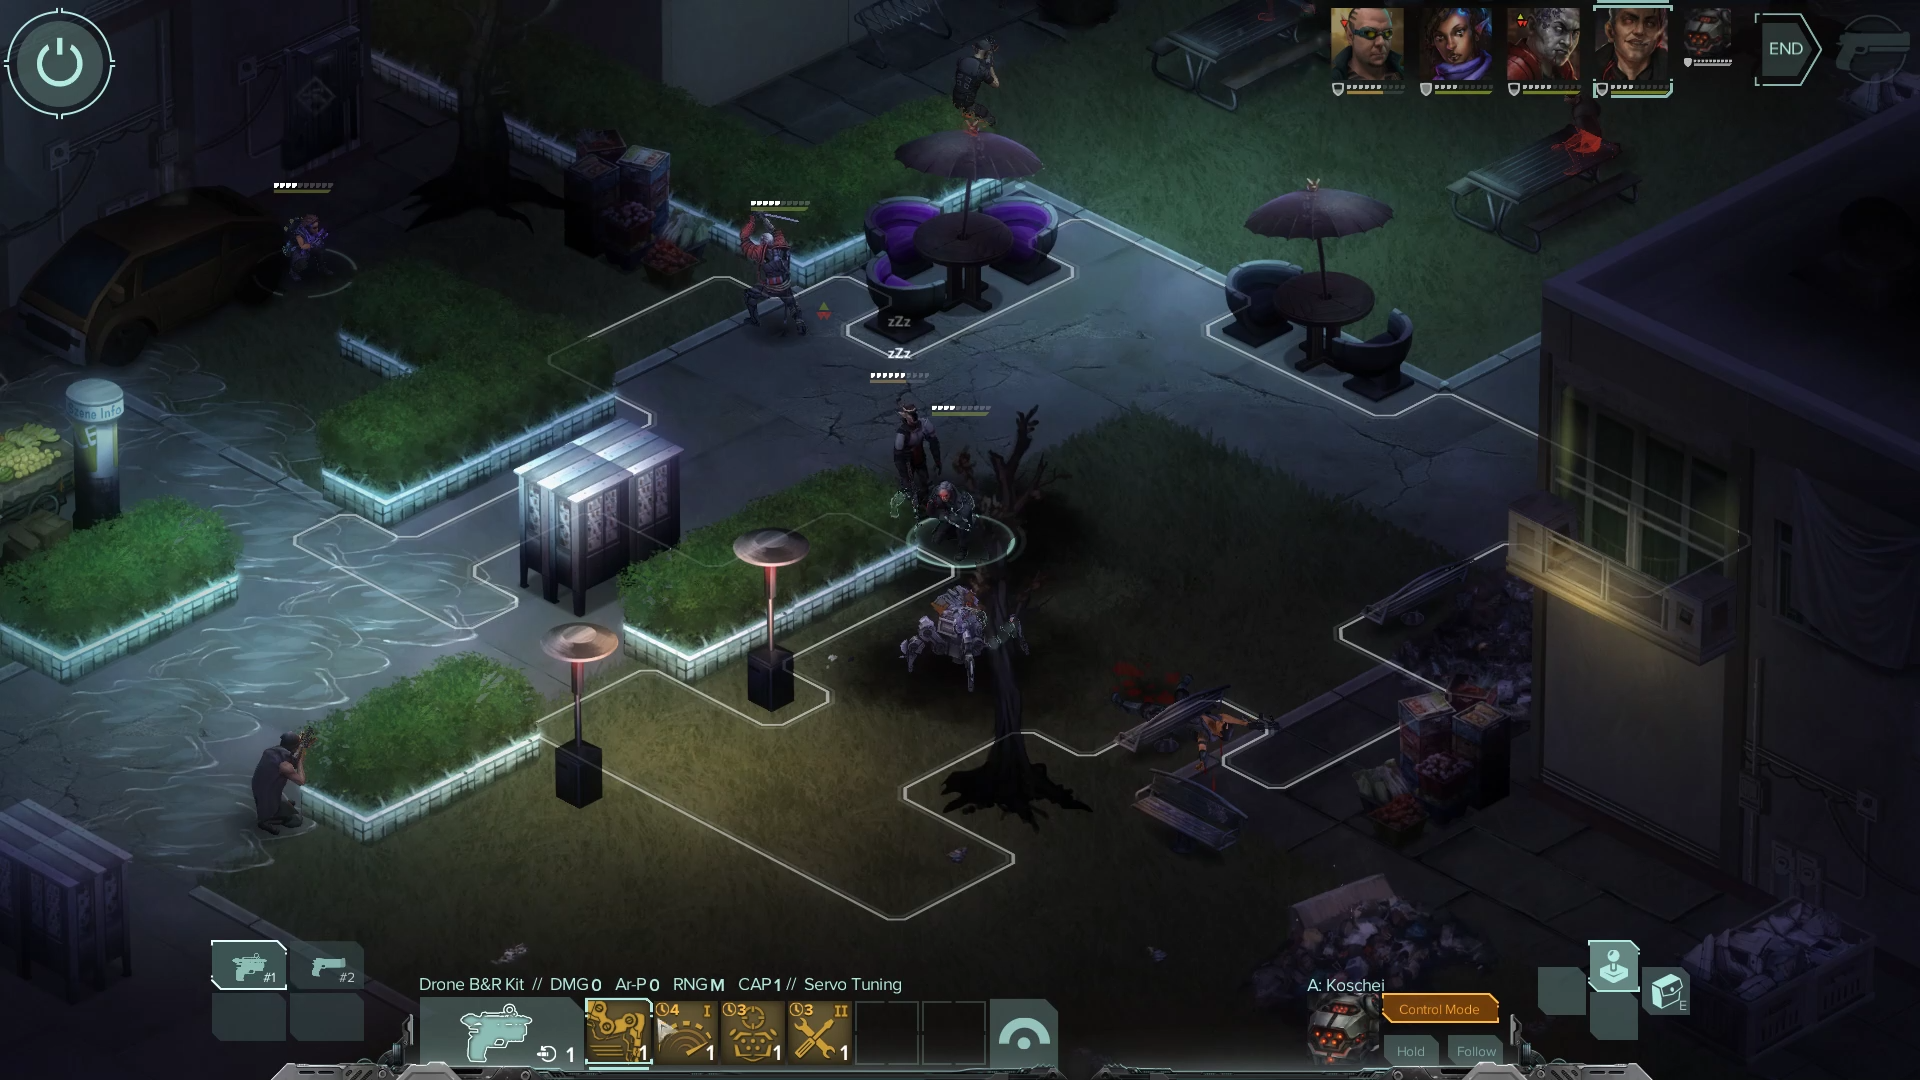 Screen shot of the game's combat.